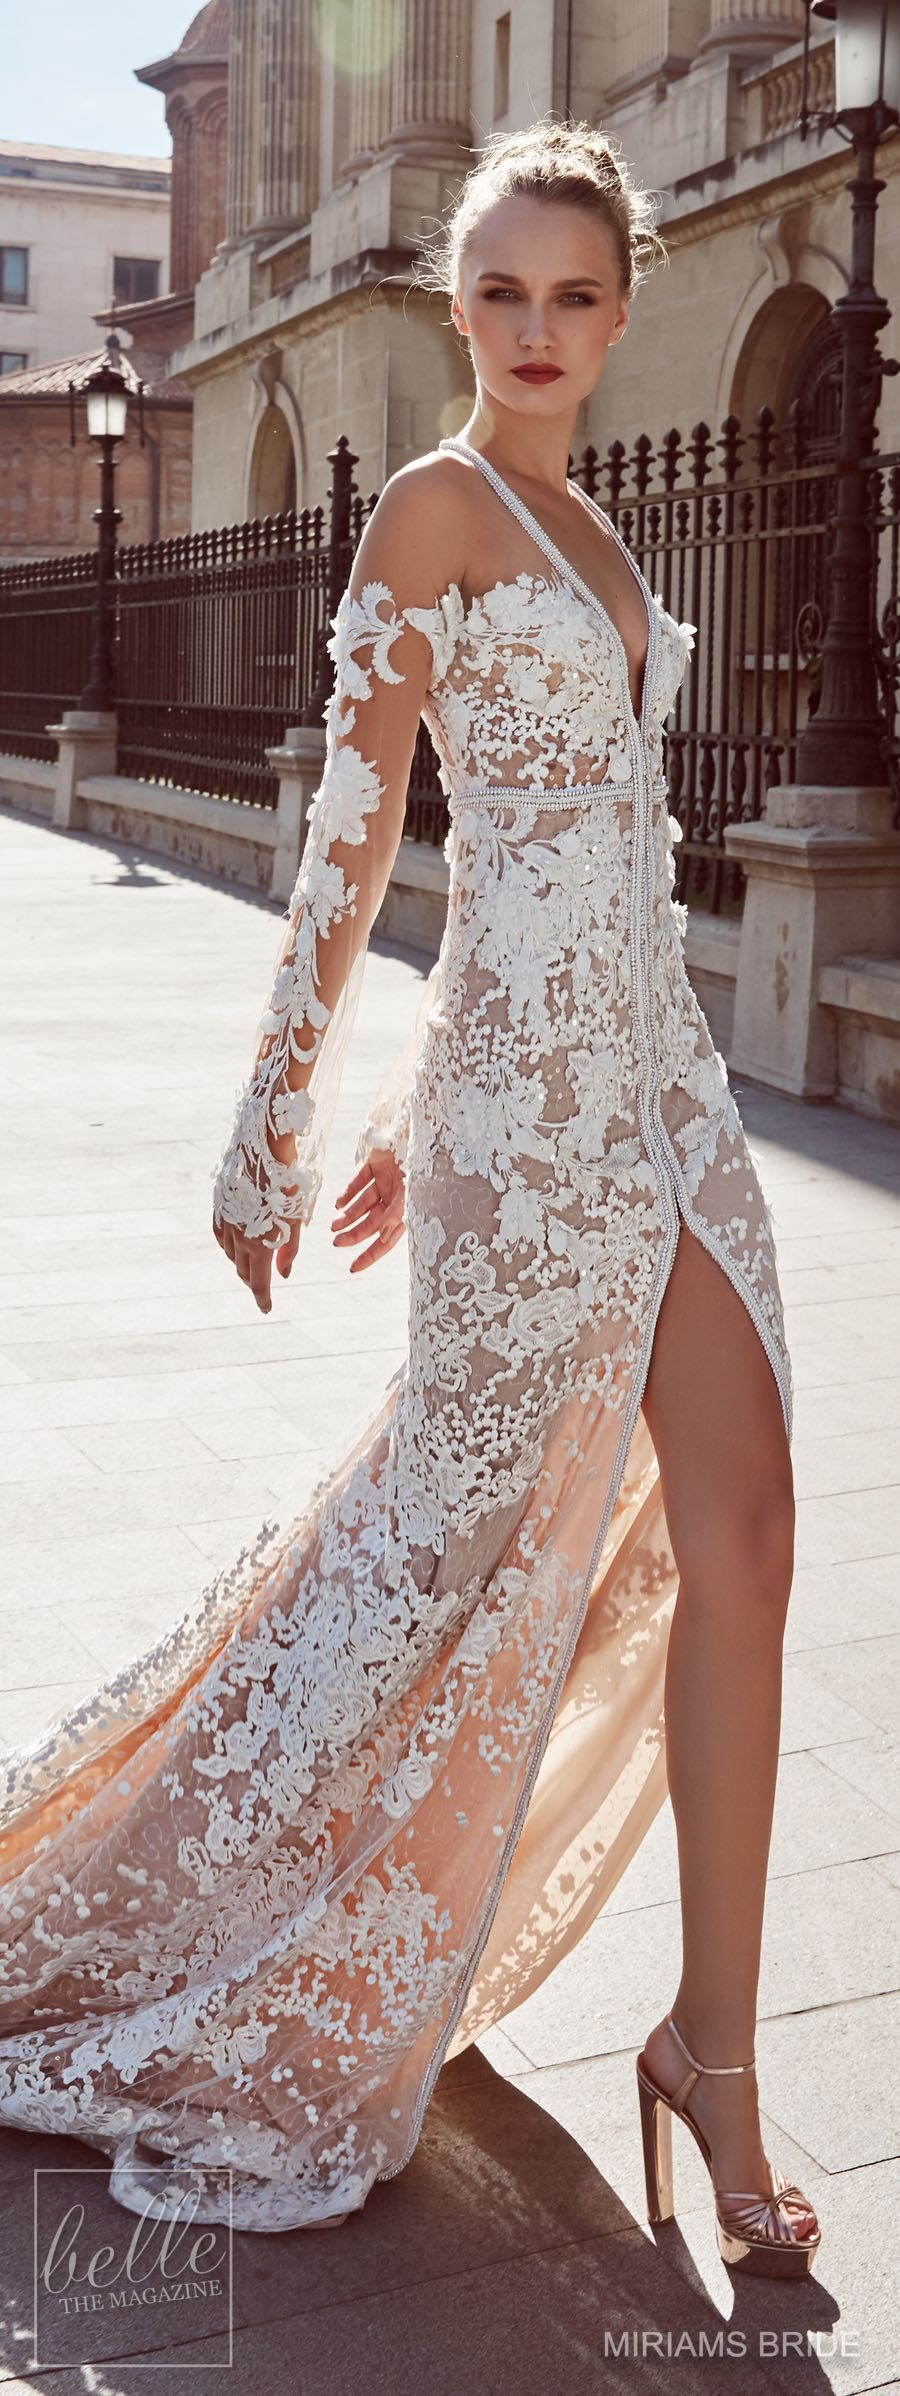 How much are wedding dresses  Wedding Dress by Miriams Bride  Collection WeddingDress